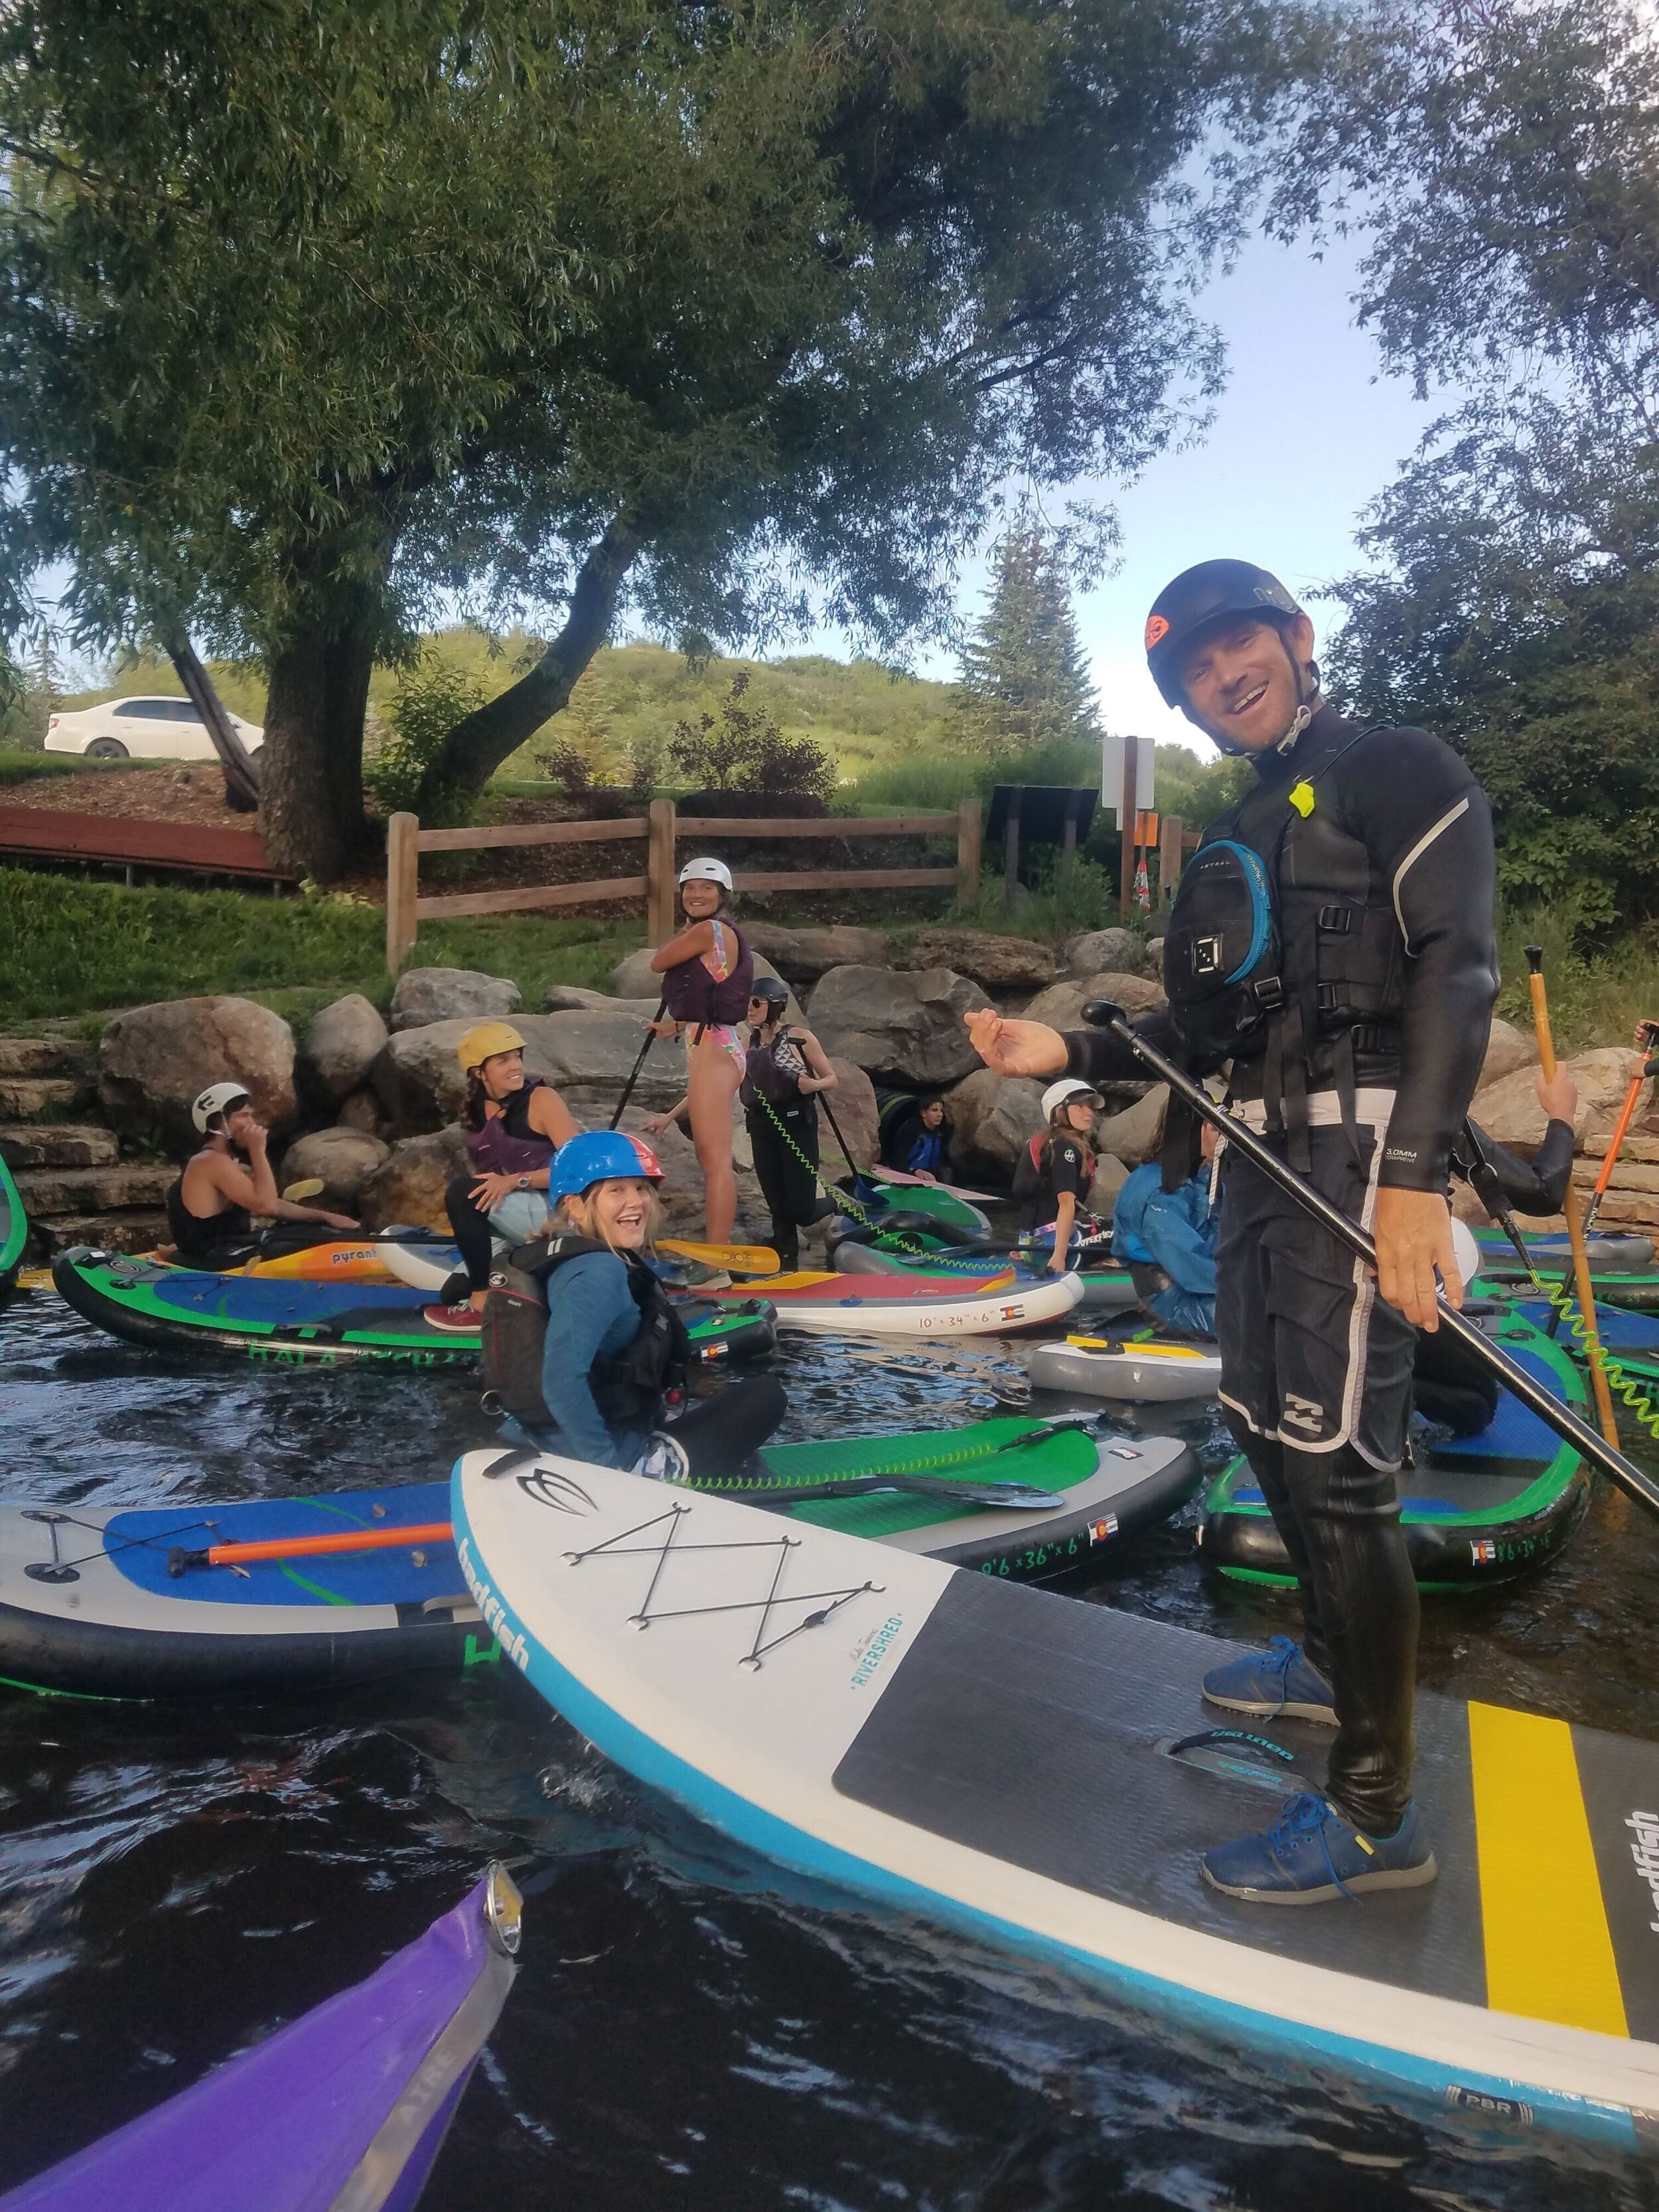 Paddleboarding on the Yampa River